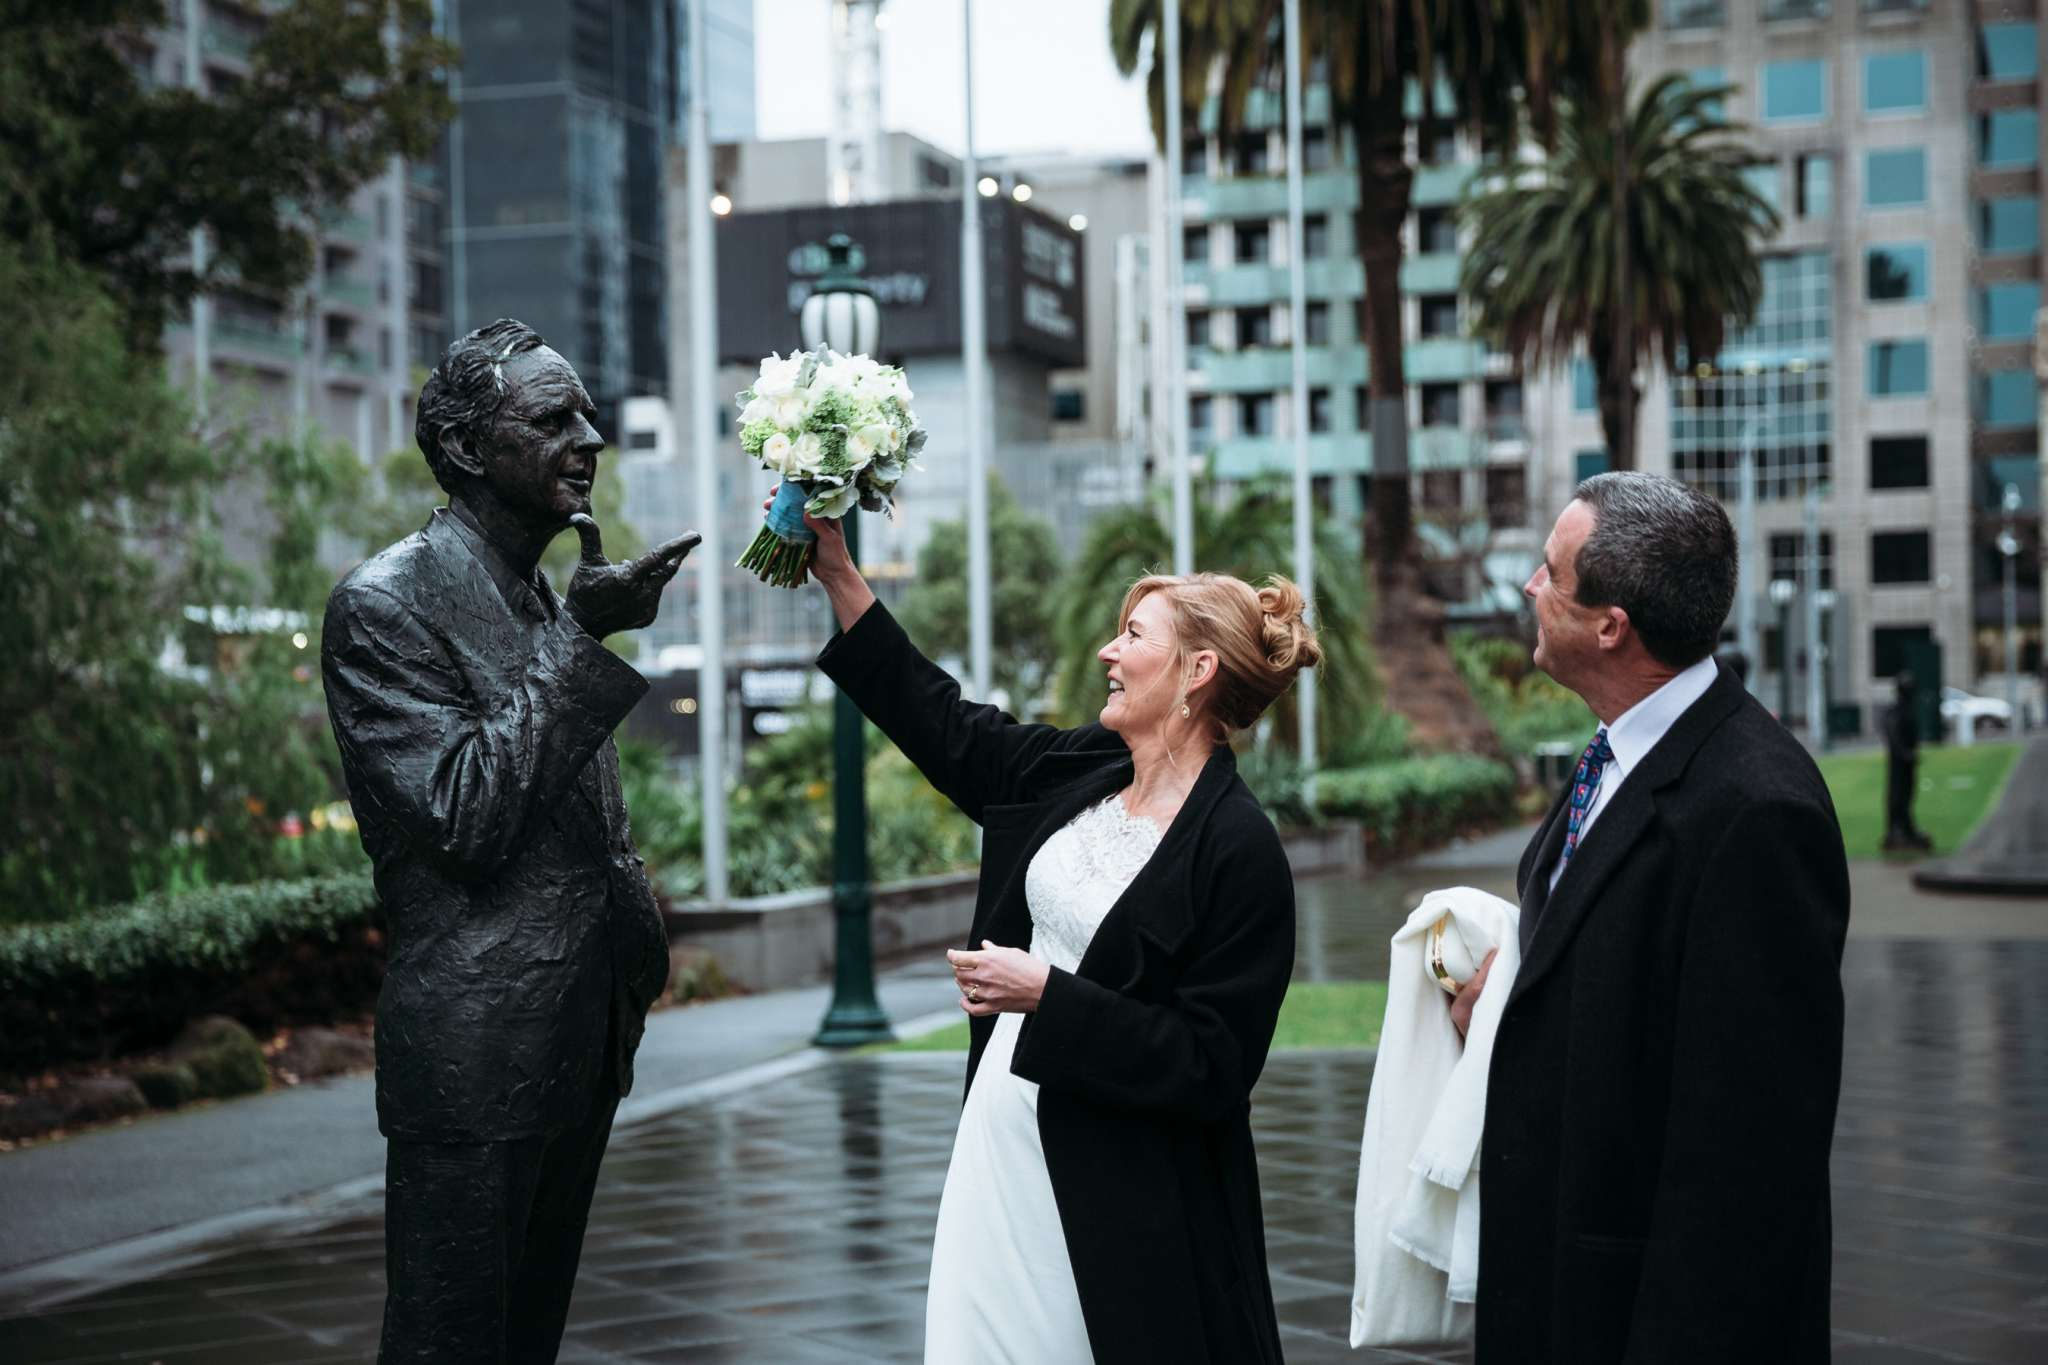 Wedding Photography Melbourne - Sharon & Peter 225